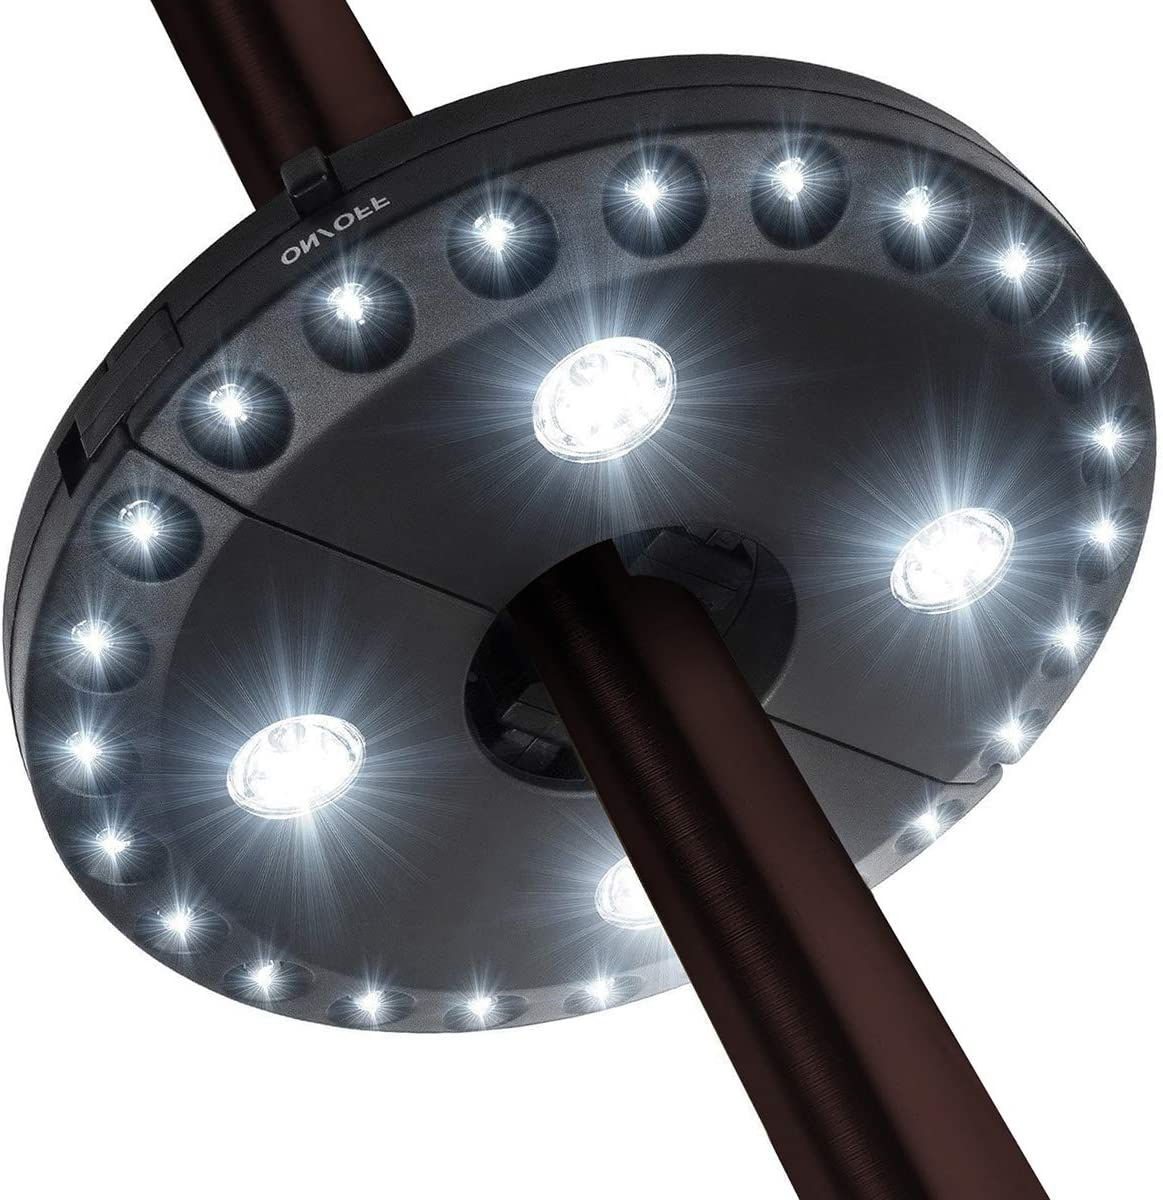 Camping Tents and Other Outdoor Use,for Most Umbrellas,Ship from US!!! Uplord Patio Umbrella Lights,Cordless 28 LED Night Lights,for Patio Umbrellas